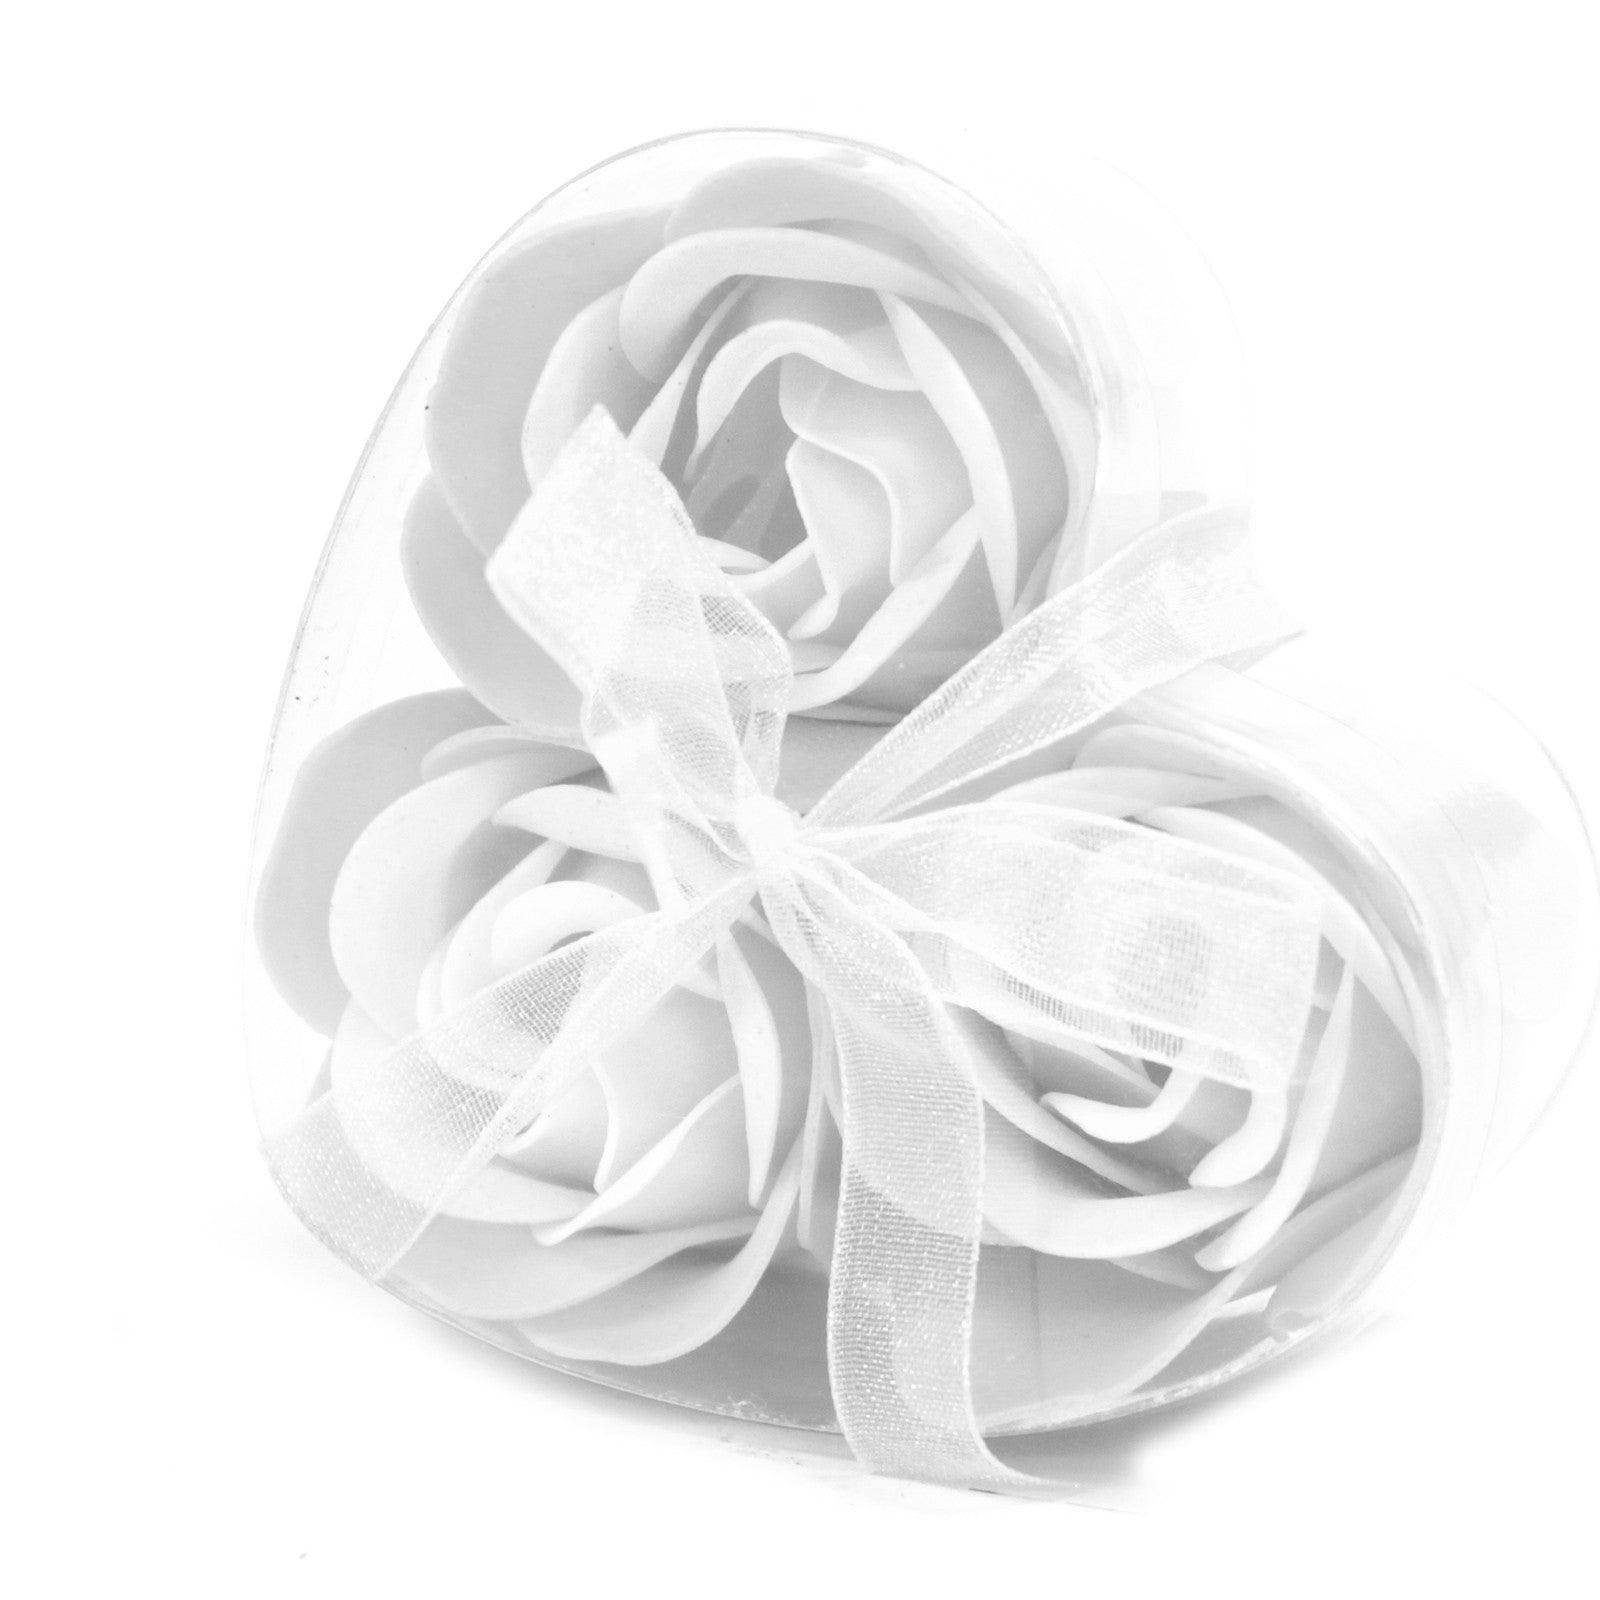 Soap Flowers - Pack of 3